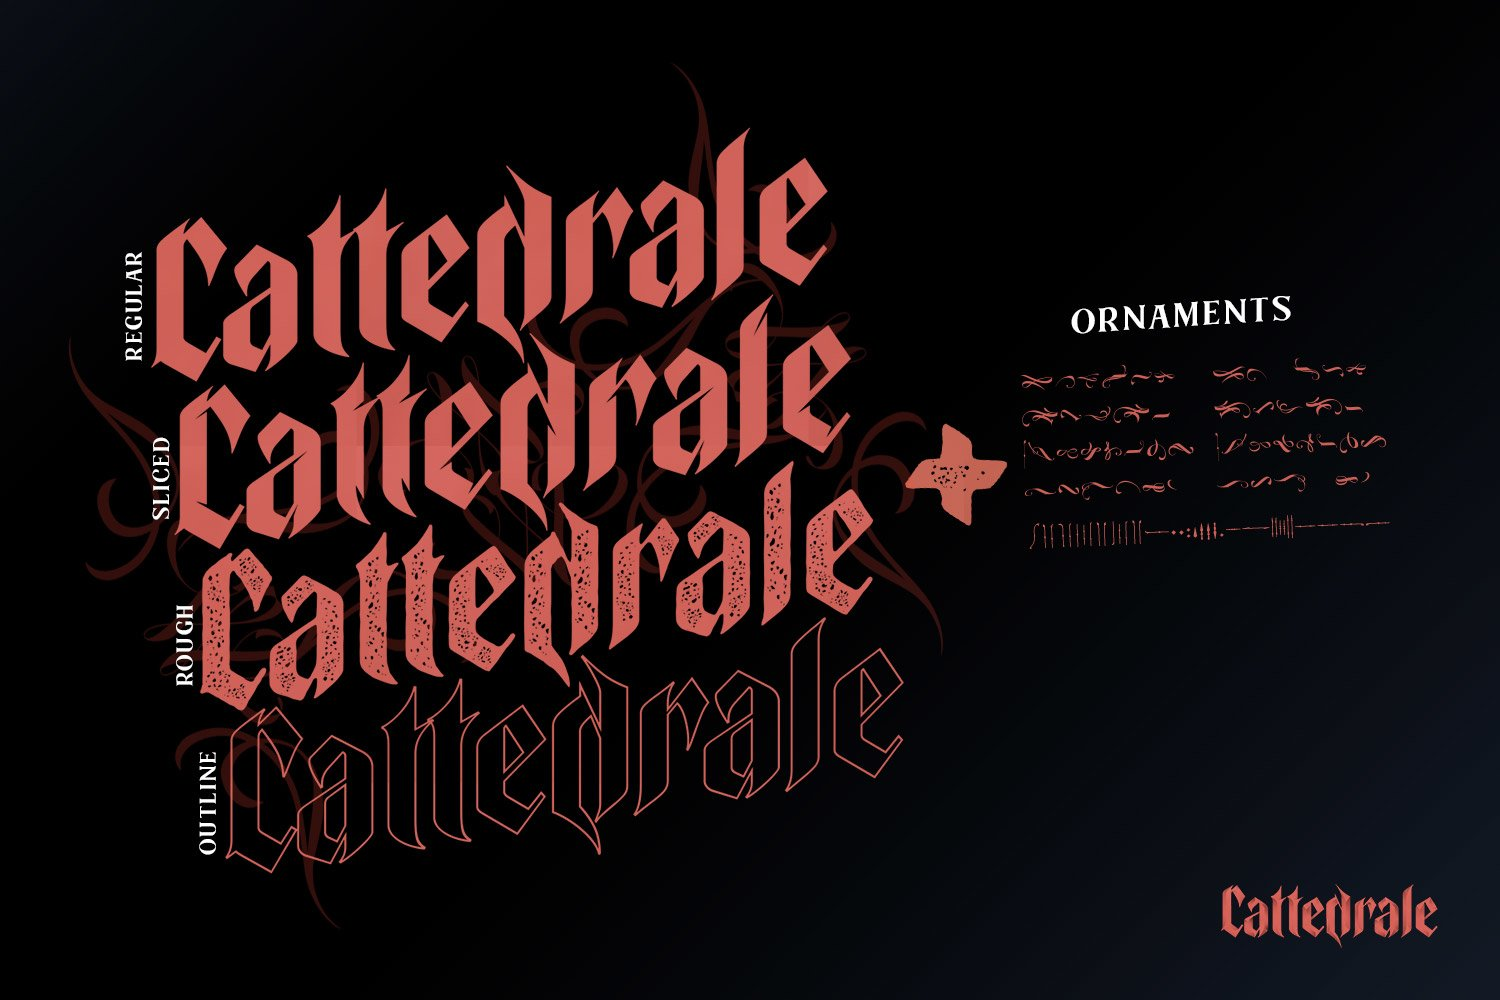 Cattedrale - Gothic Blackletter example image 4